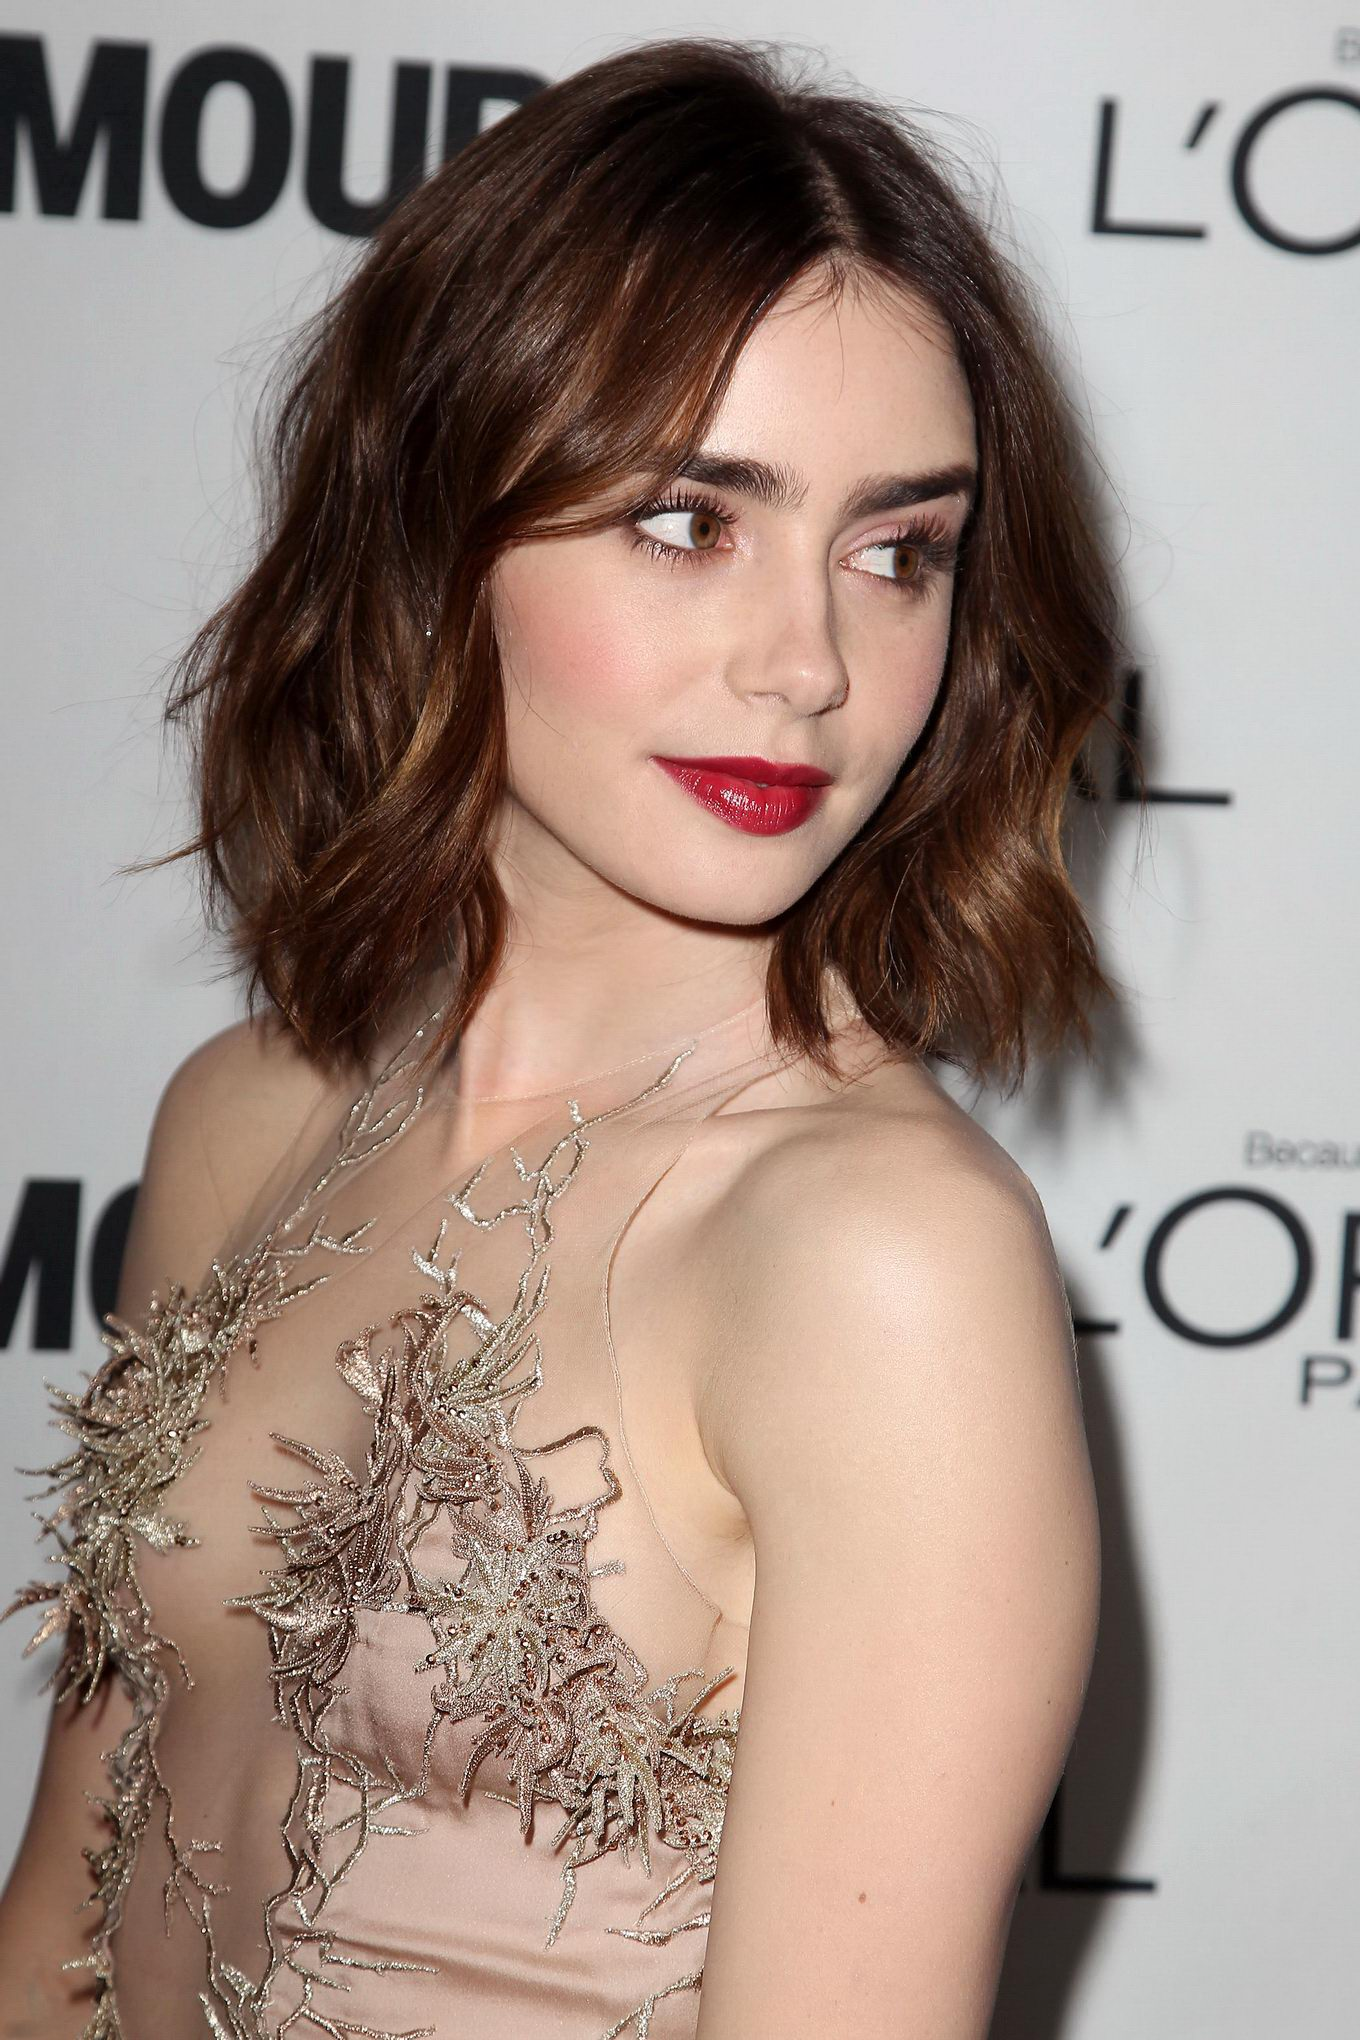 Check out Lily Collins Sizzling Hot Photos & Bikini Pics ...